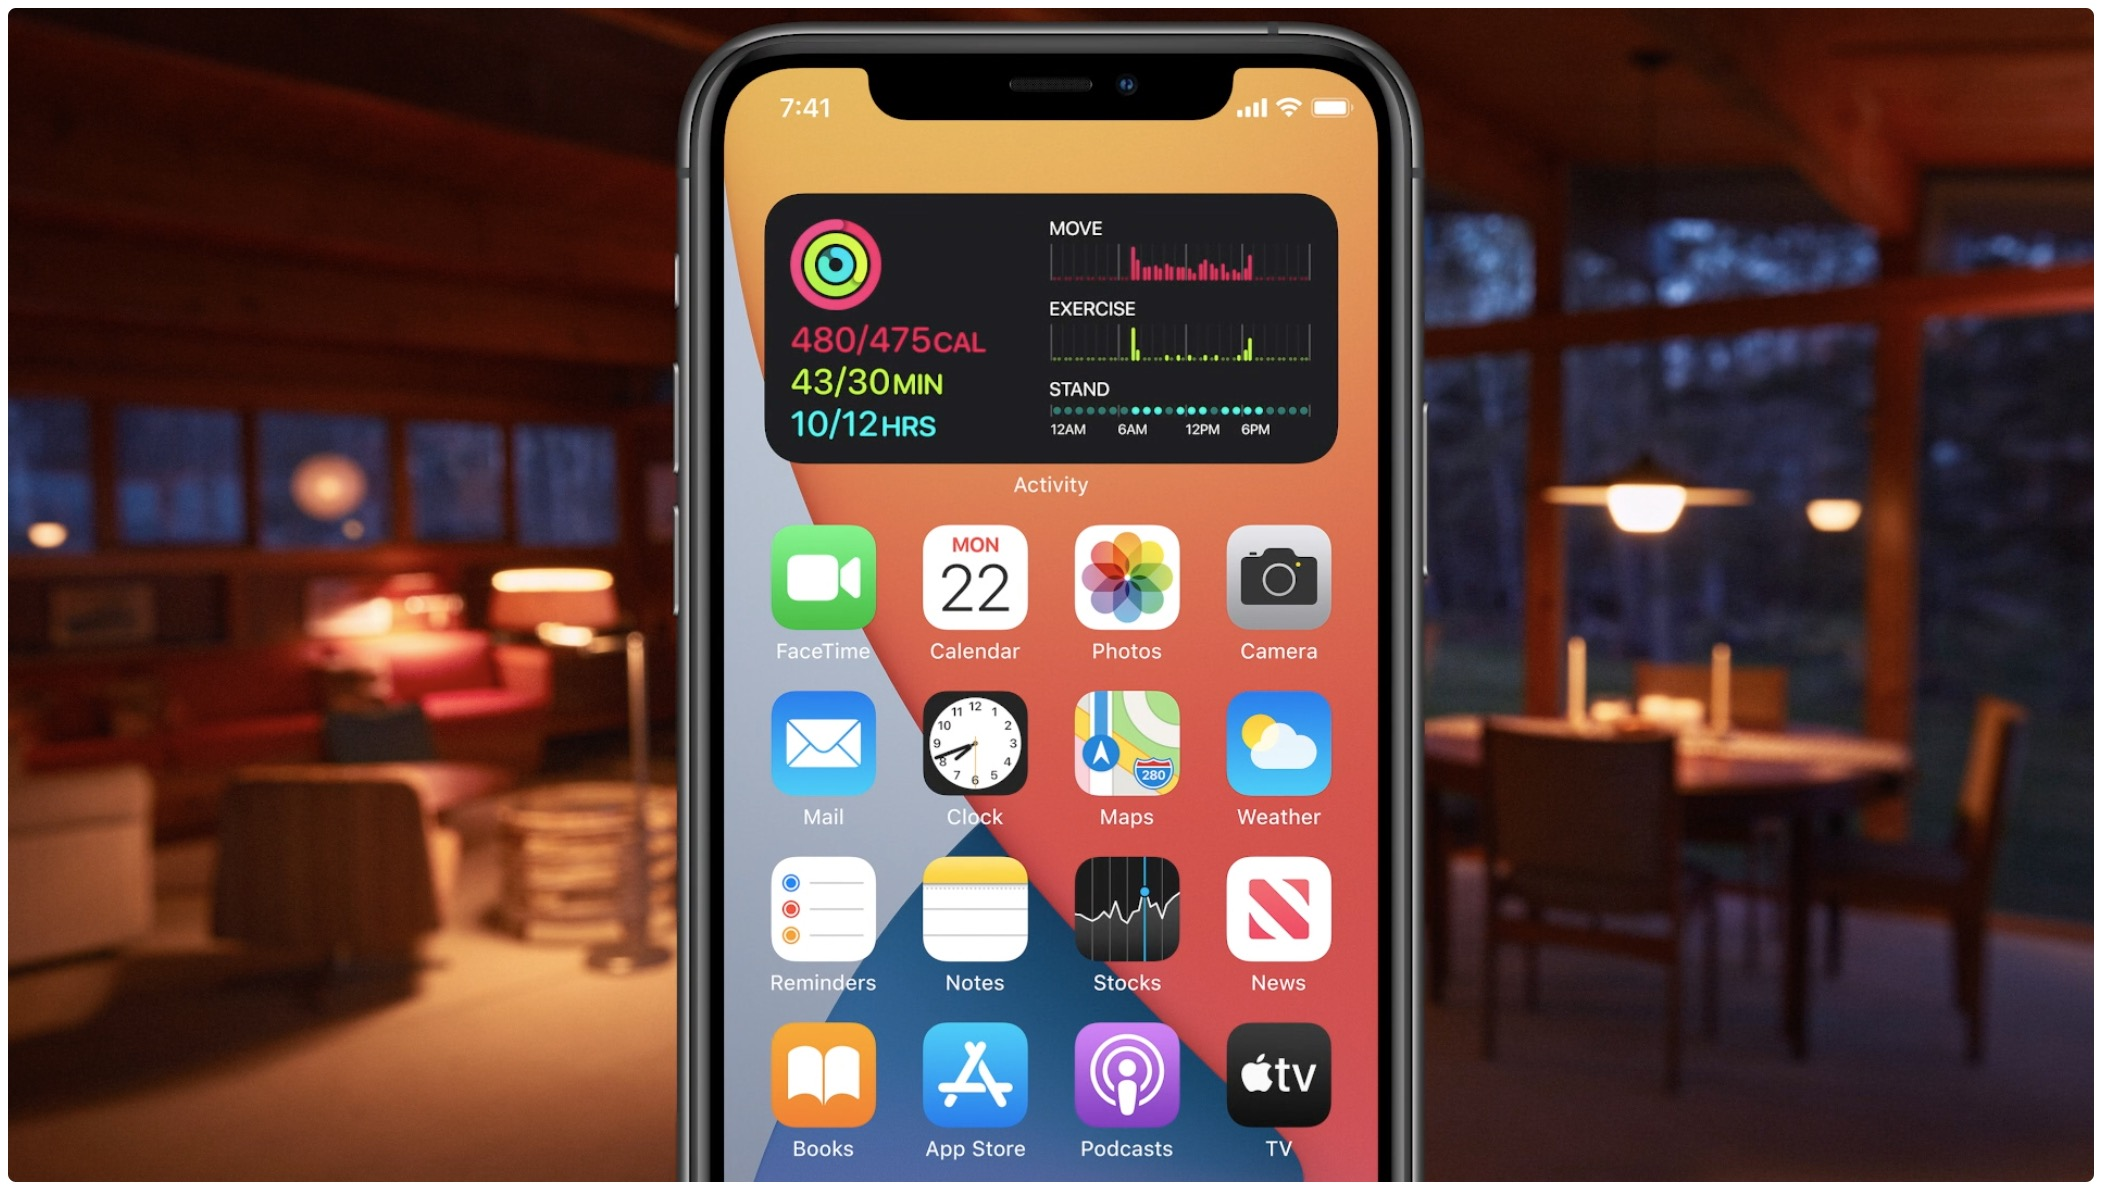 Resizable Home Screen Widgets Finally Come To Iphone Ipad With Ios And Ipados 14